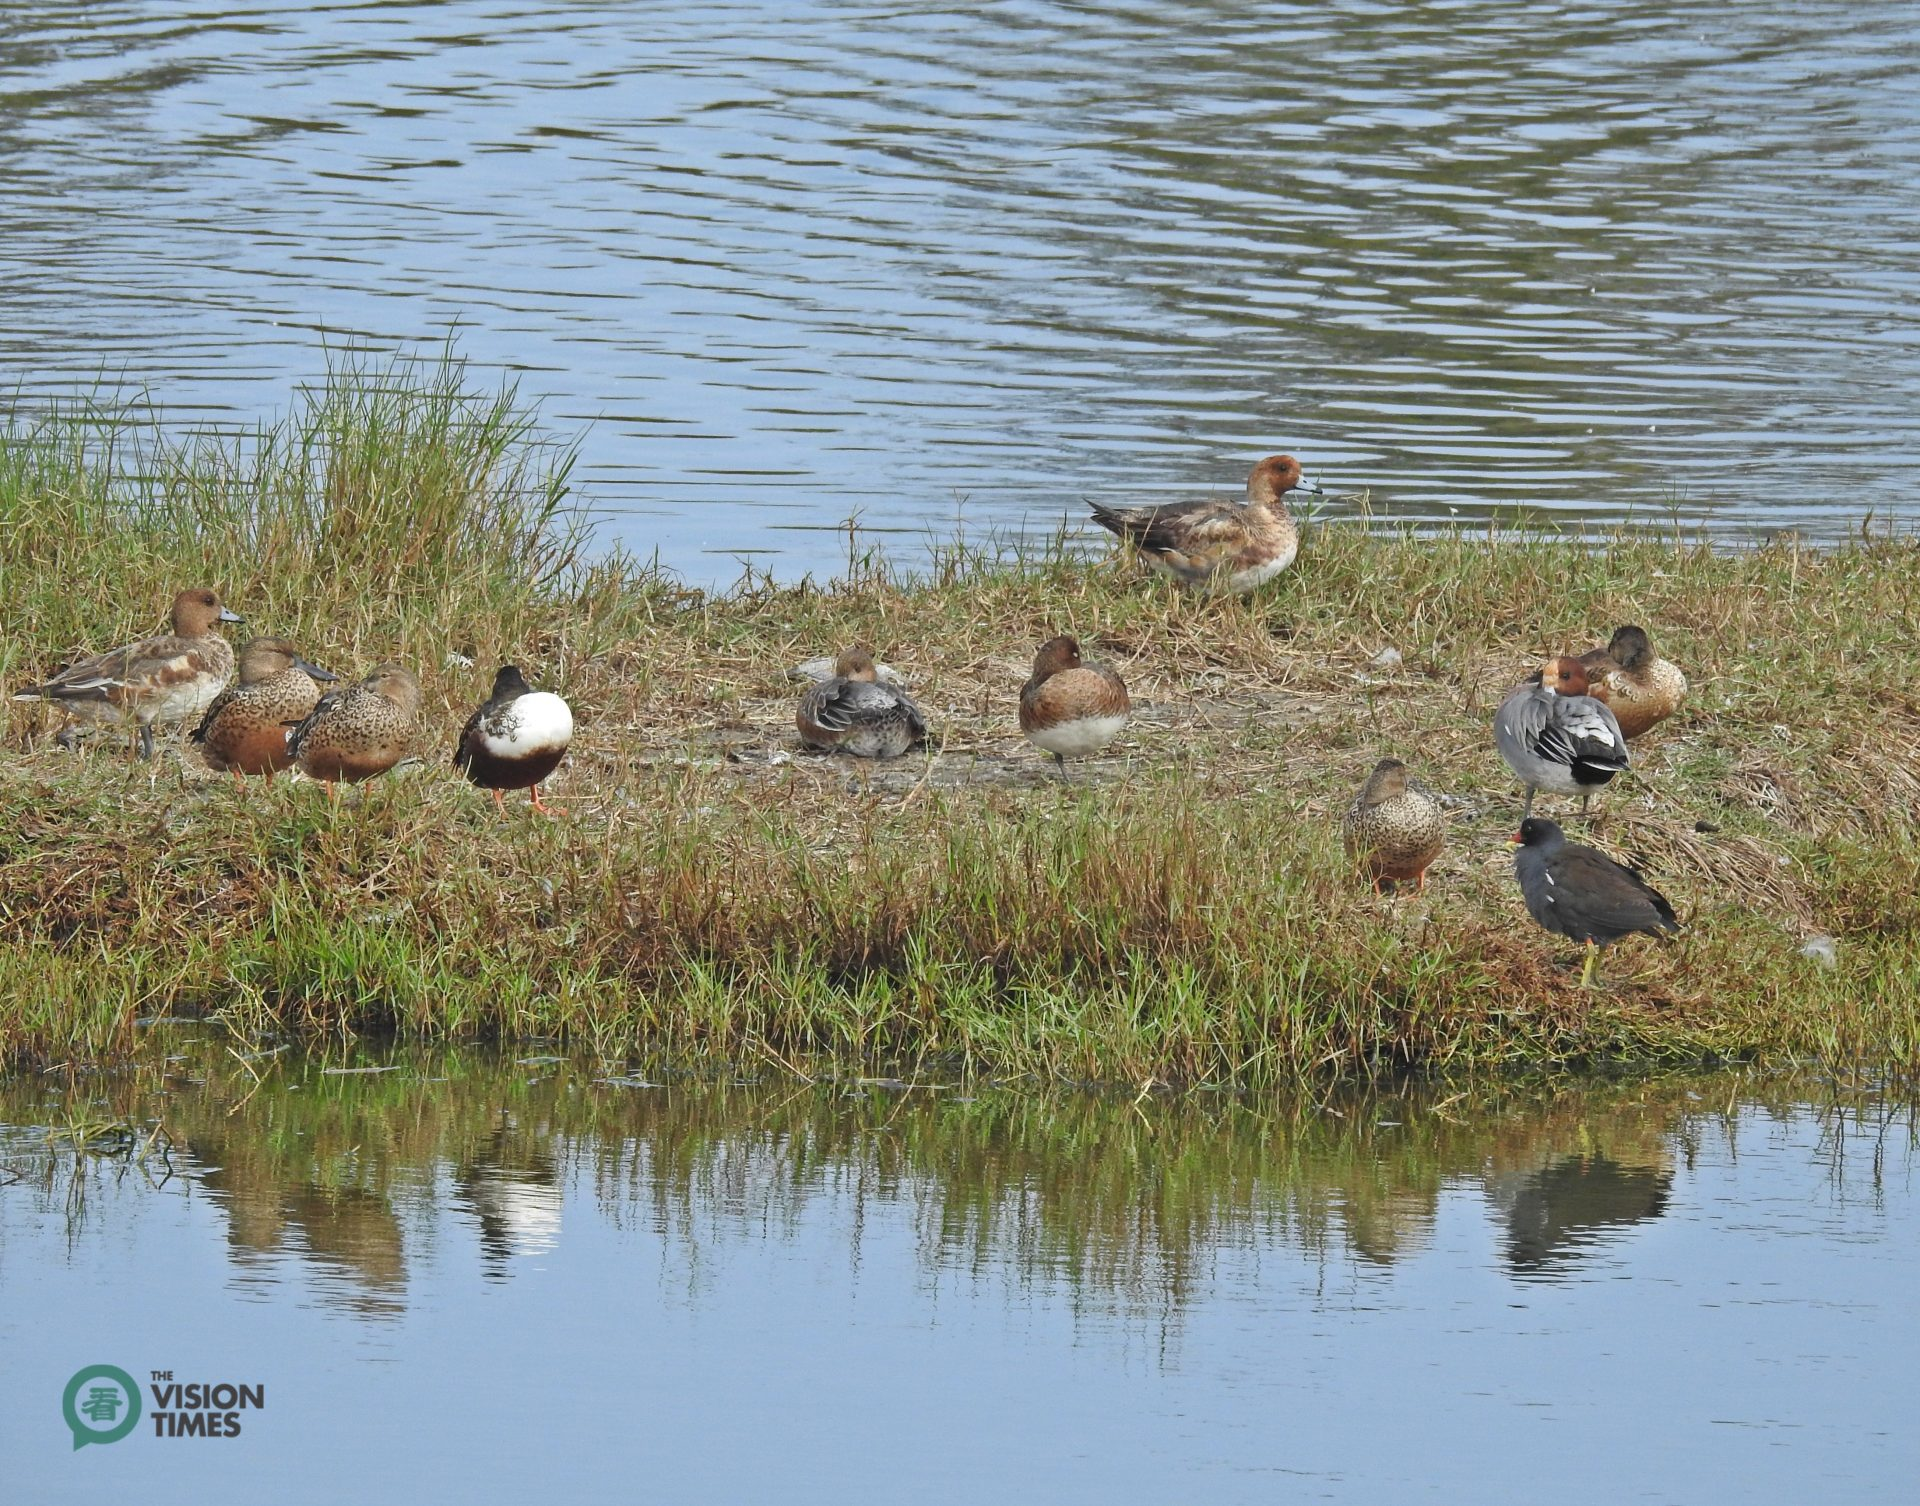 The Eurasian Wigeon (赤頸鴨) and Common Moorhen (紅冠水雞) in the Aogu Wetland. (Image: Billy Shyu / Vision Times)